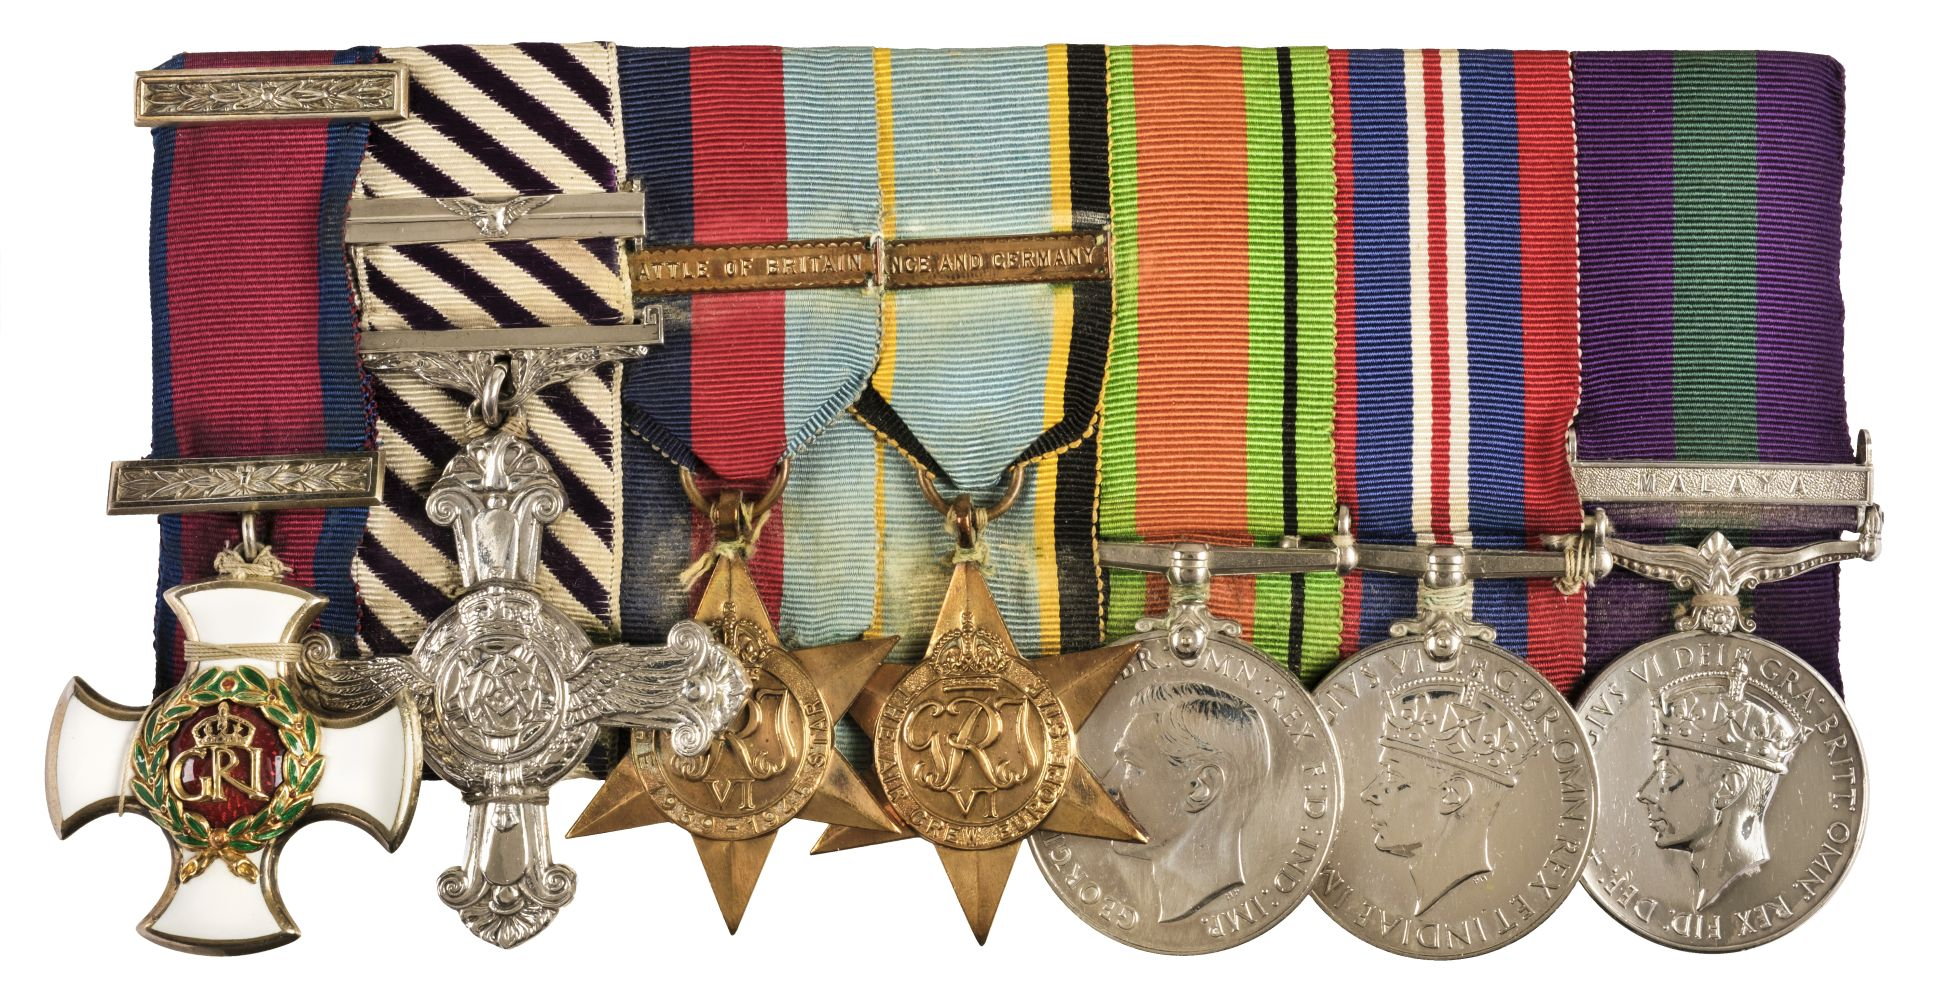 * Battle of Britain Medal Group - Air Commodore Peter Brothers